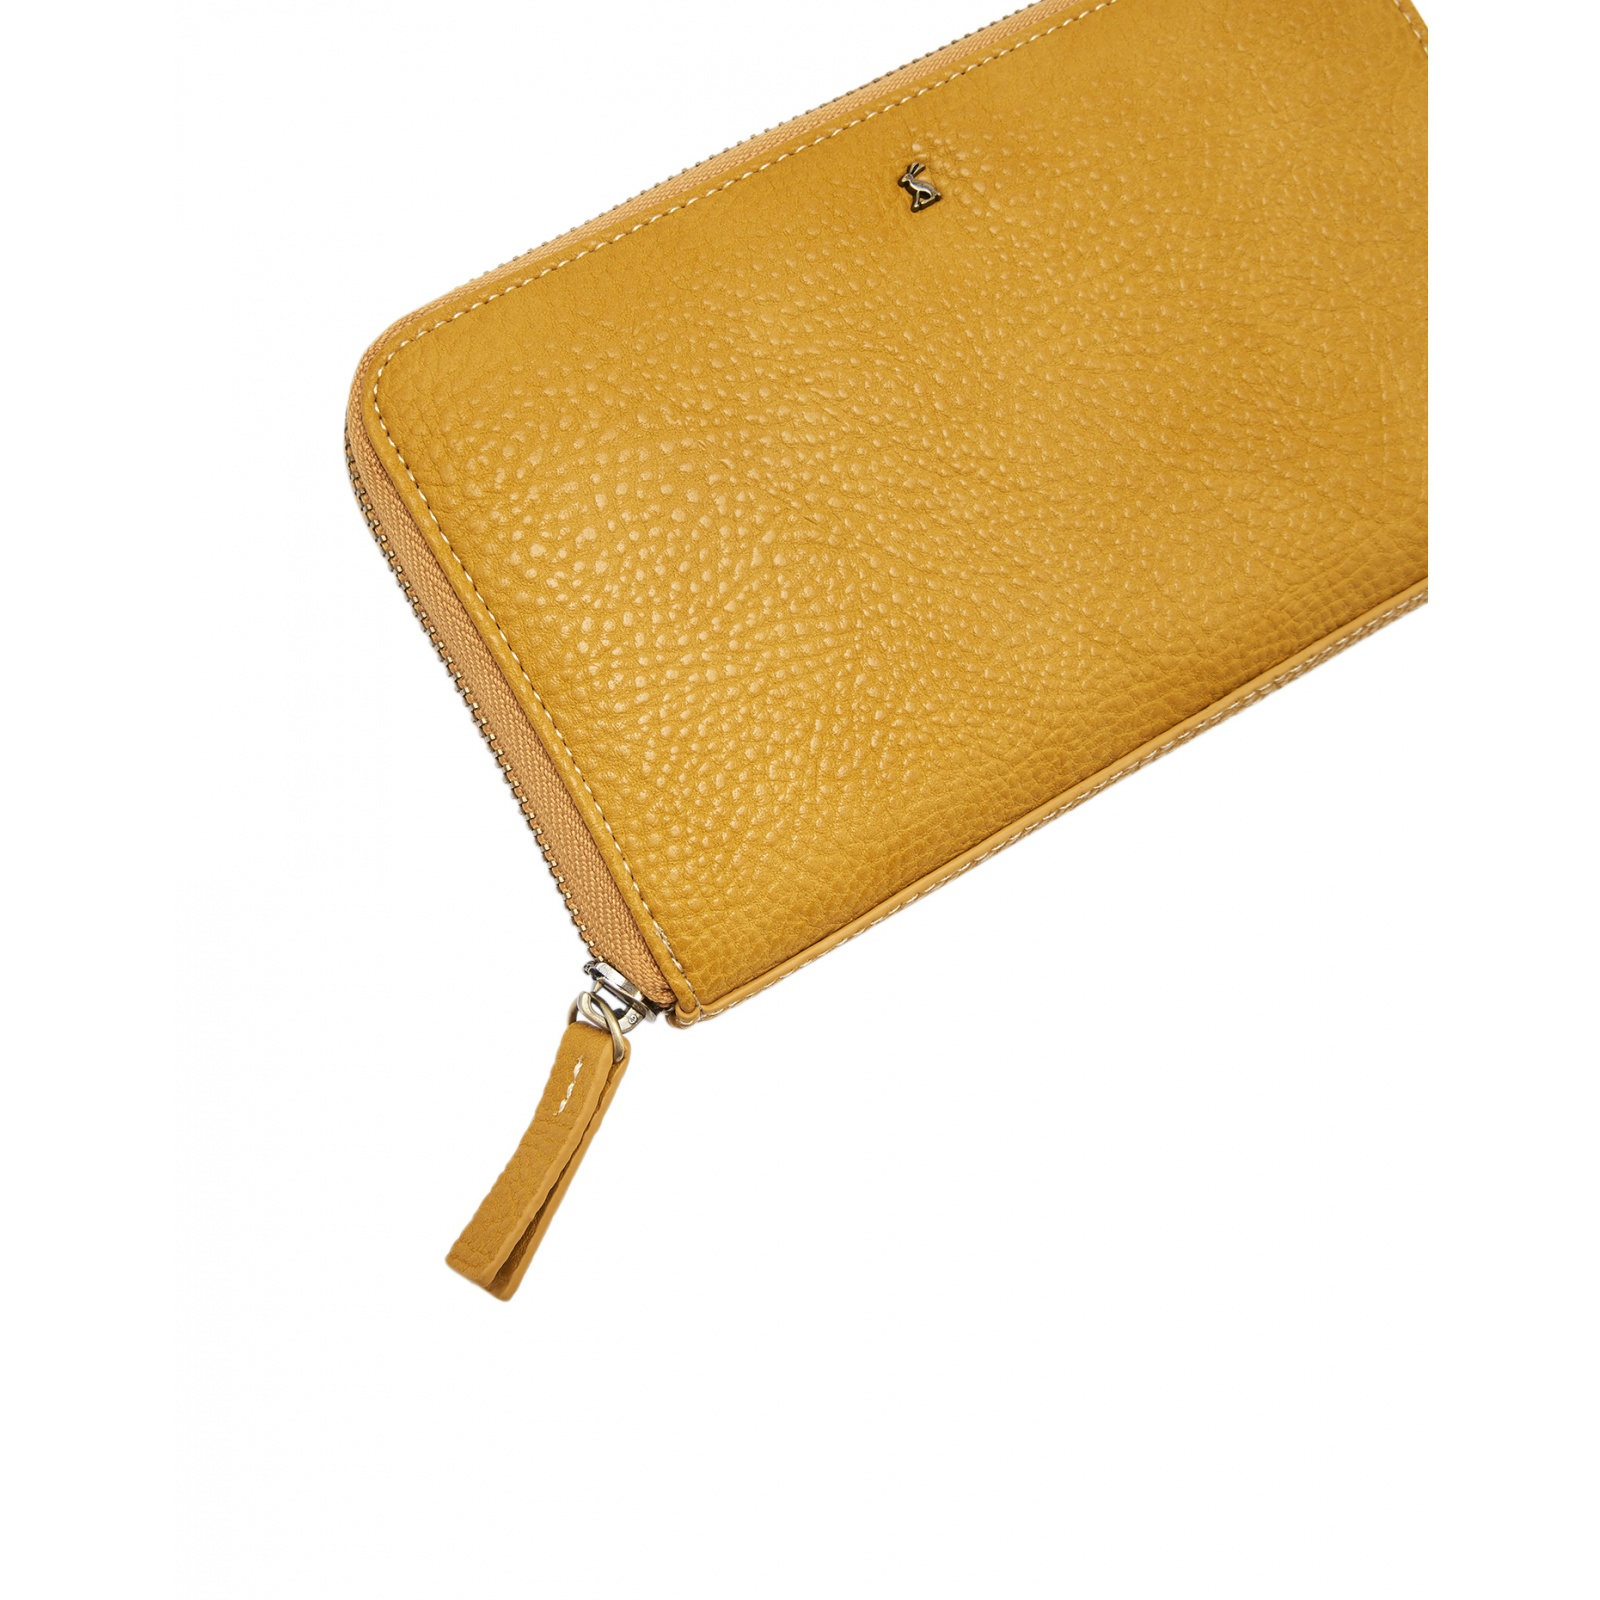 Joules-Fairford-Bright-Faux-Leather-Zip-Round-Purse-MORE-COLOURS miniature 8